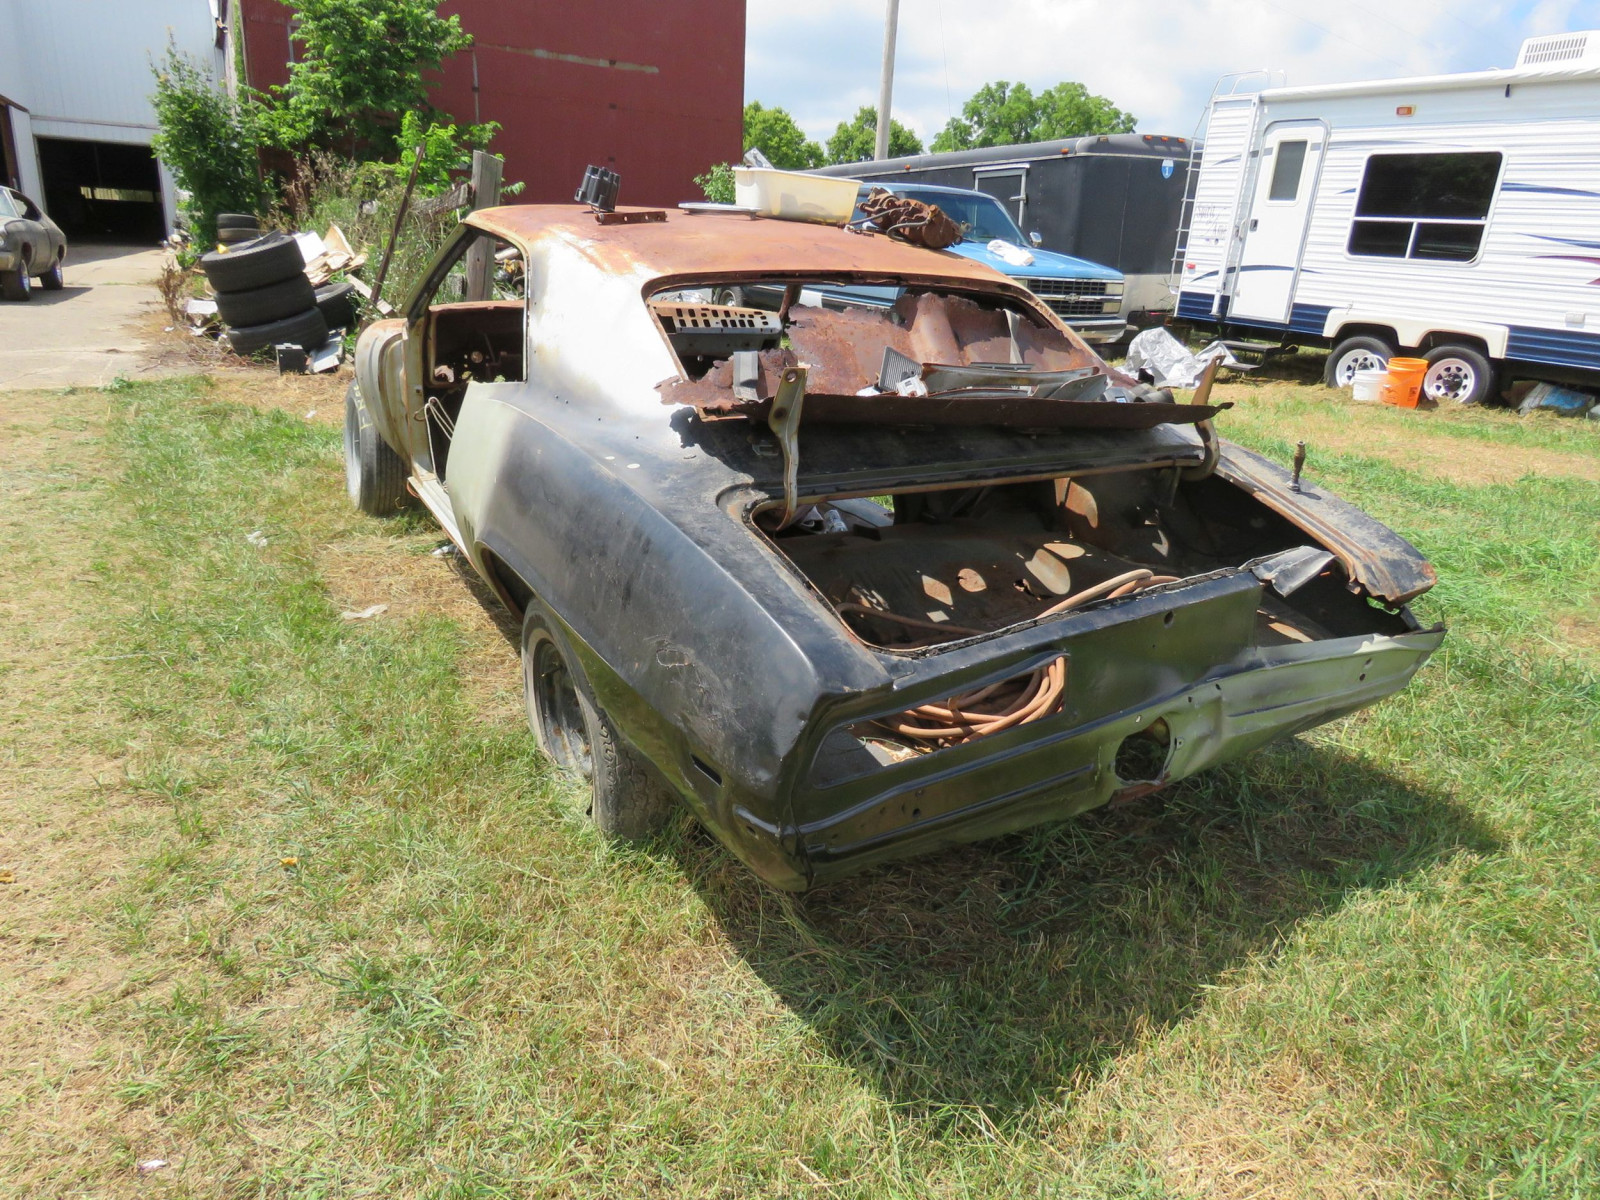 1969 Chevrolet Camaro Body for Restore - Image 5